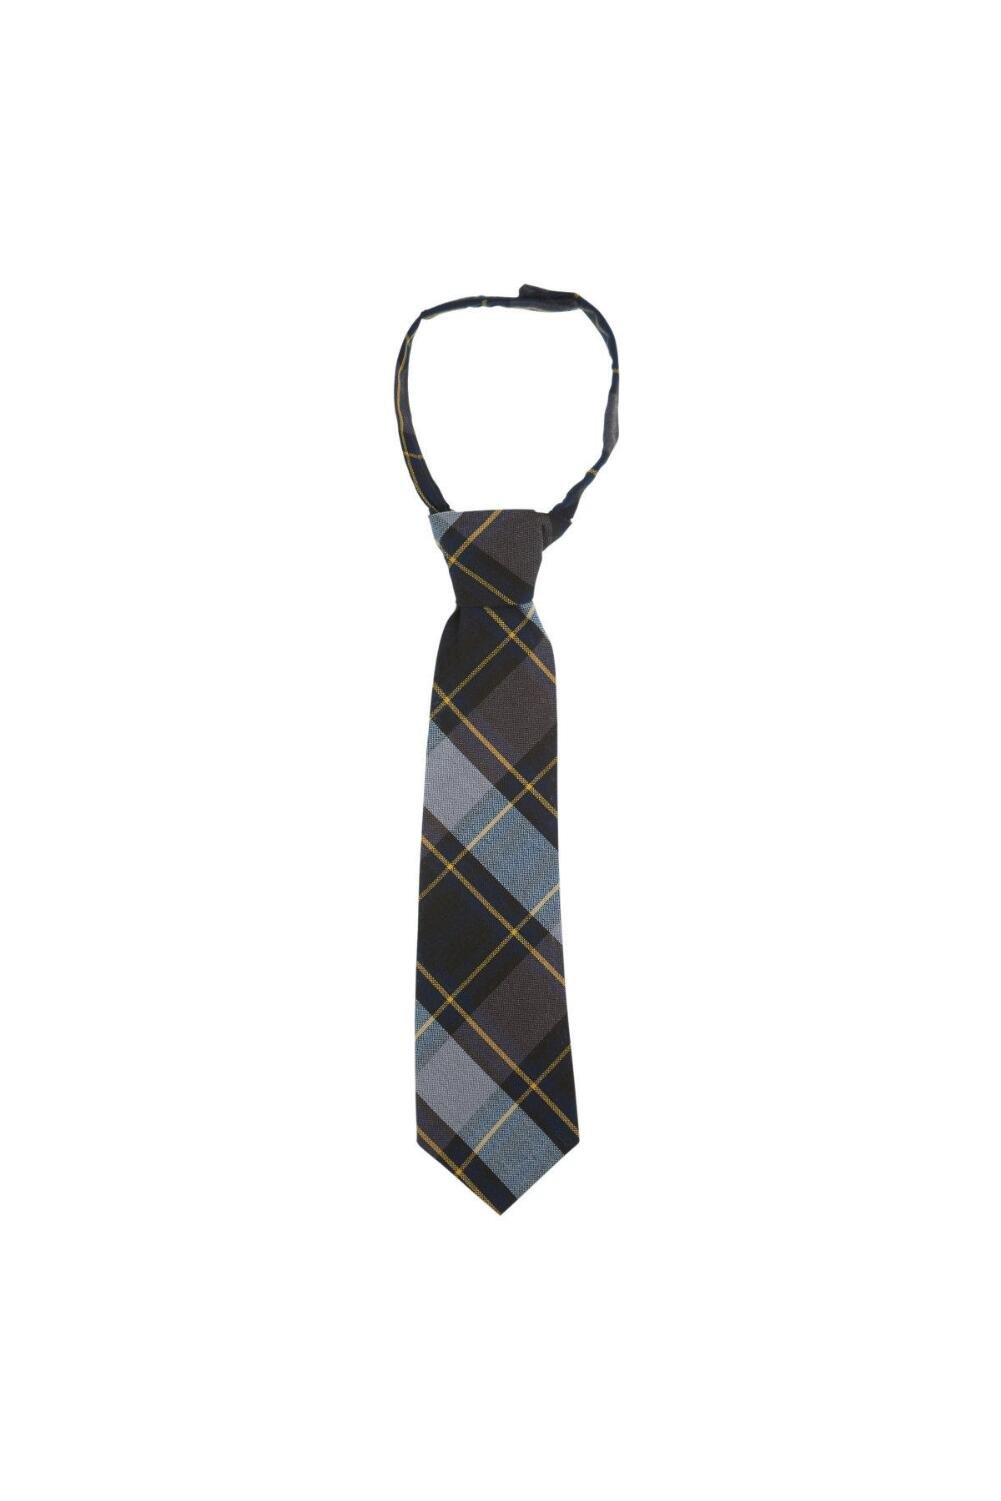 French Toast Boys' Adjustable Plaid 8-12 Size Tie, Blue/Gold Plaid, One Size by French Toast (Image #1)